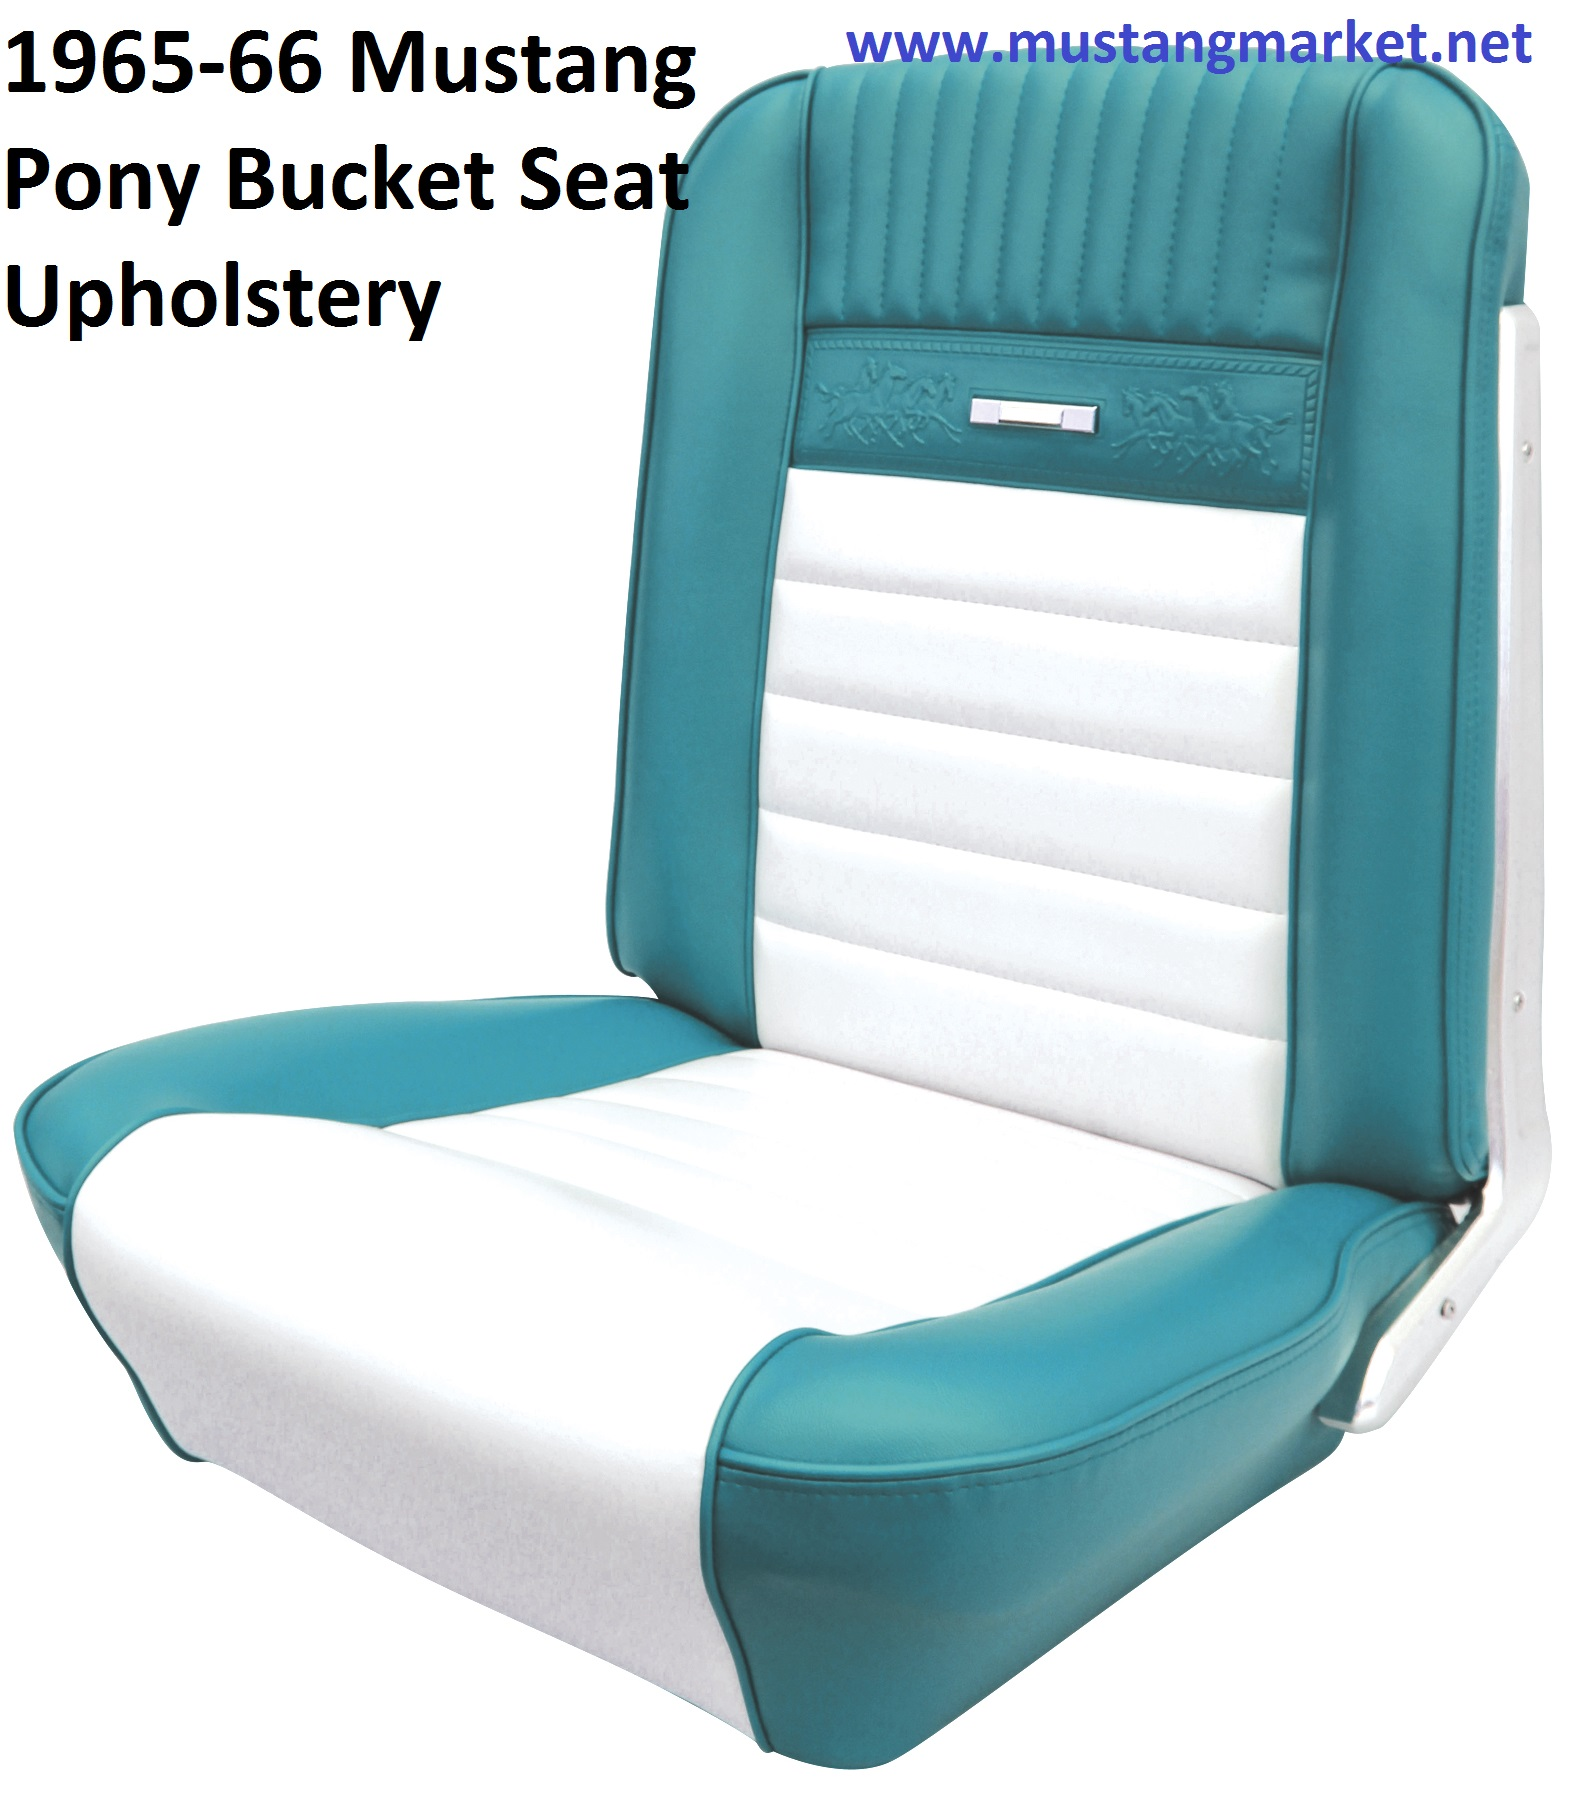 1965 Mustang Pony Upholstery